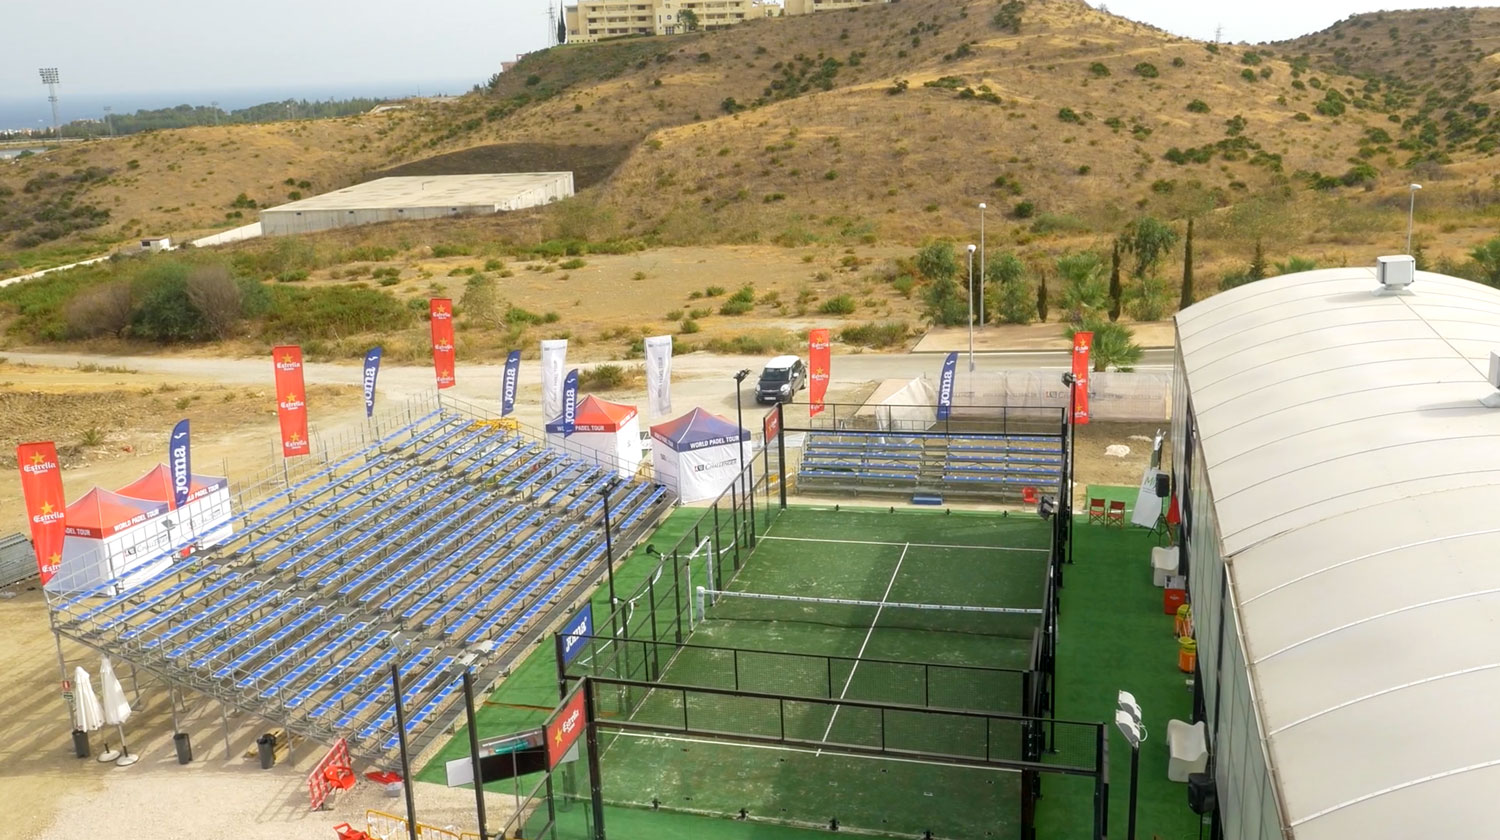 montaje-world-padel-tour-cerrado-del-aguila-world-padel-tour